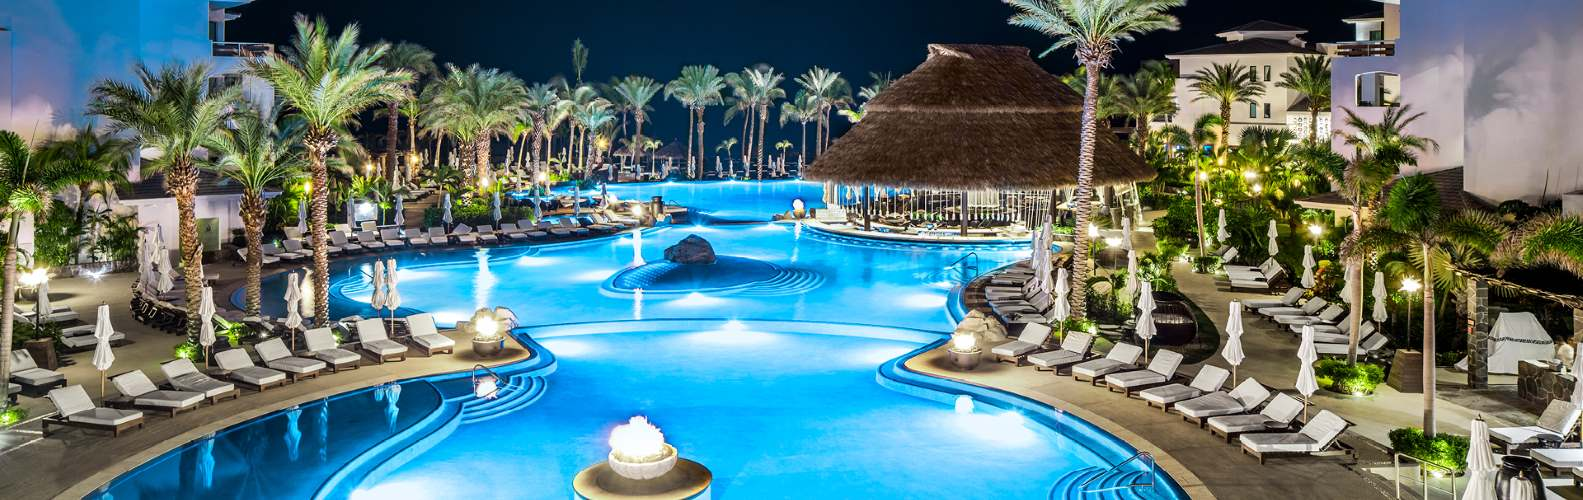 Cabo Azul Resort Accommodations